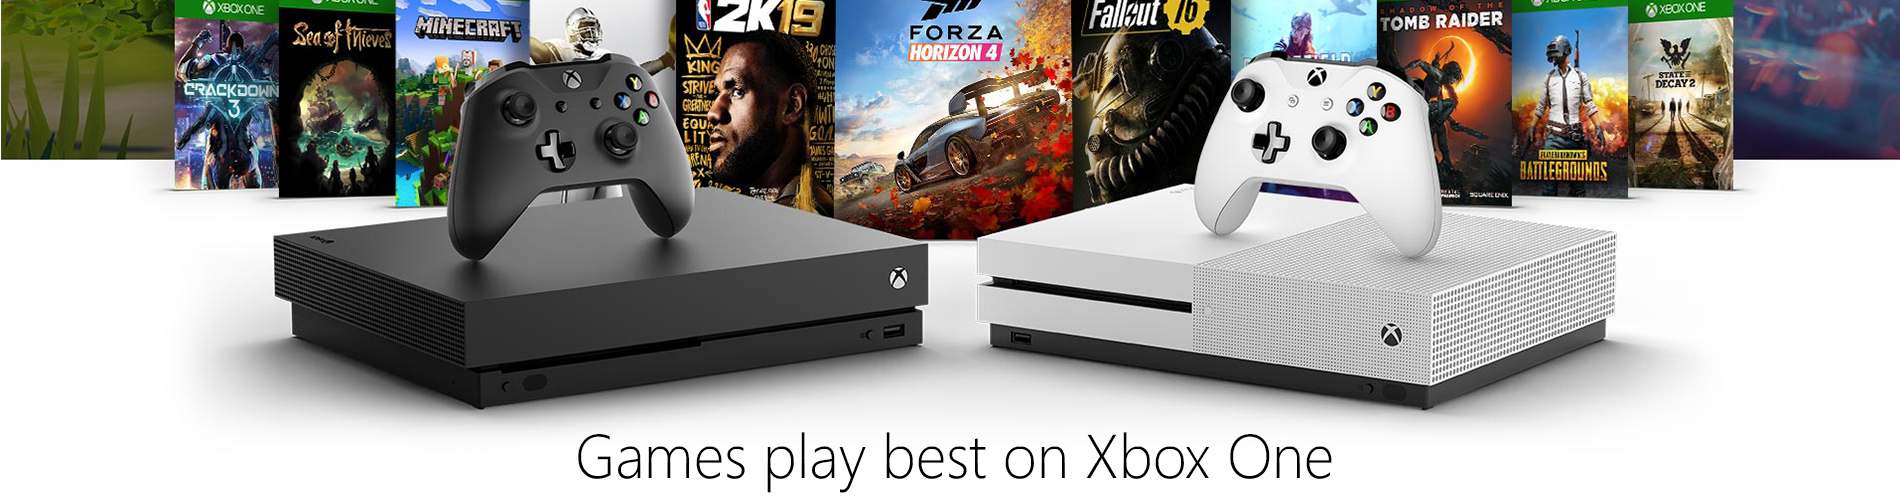 Microsoft Xbox One Landing Page Games Games Play Best Tile